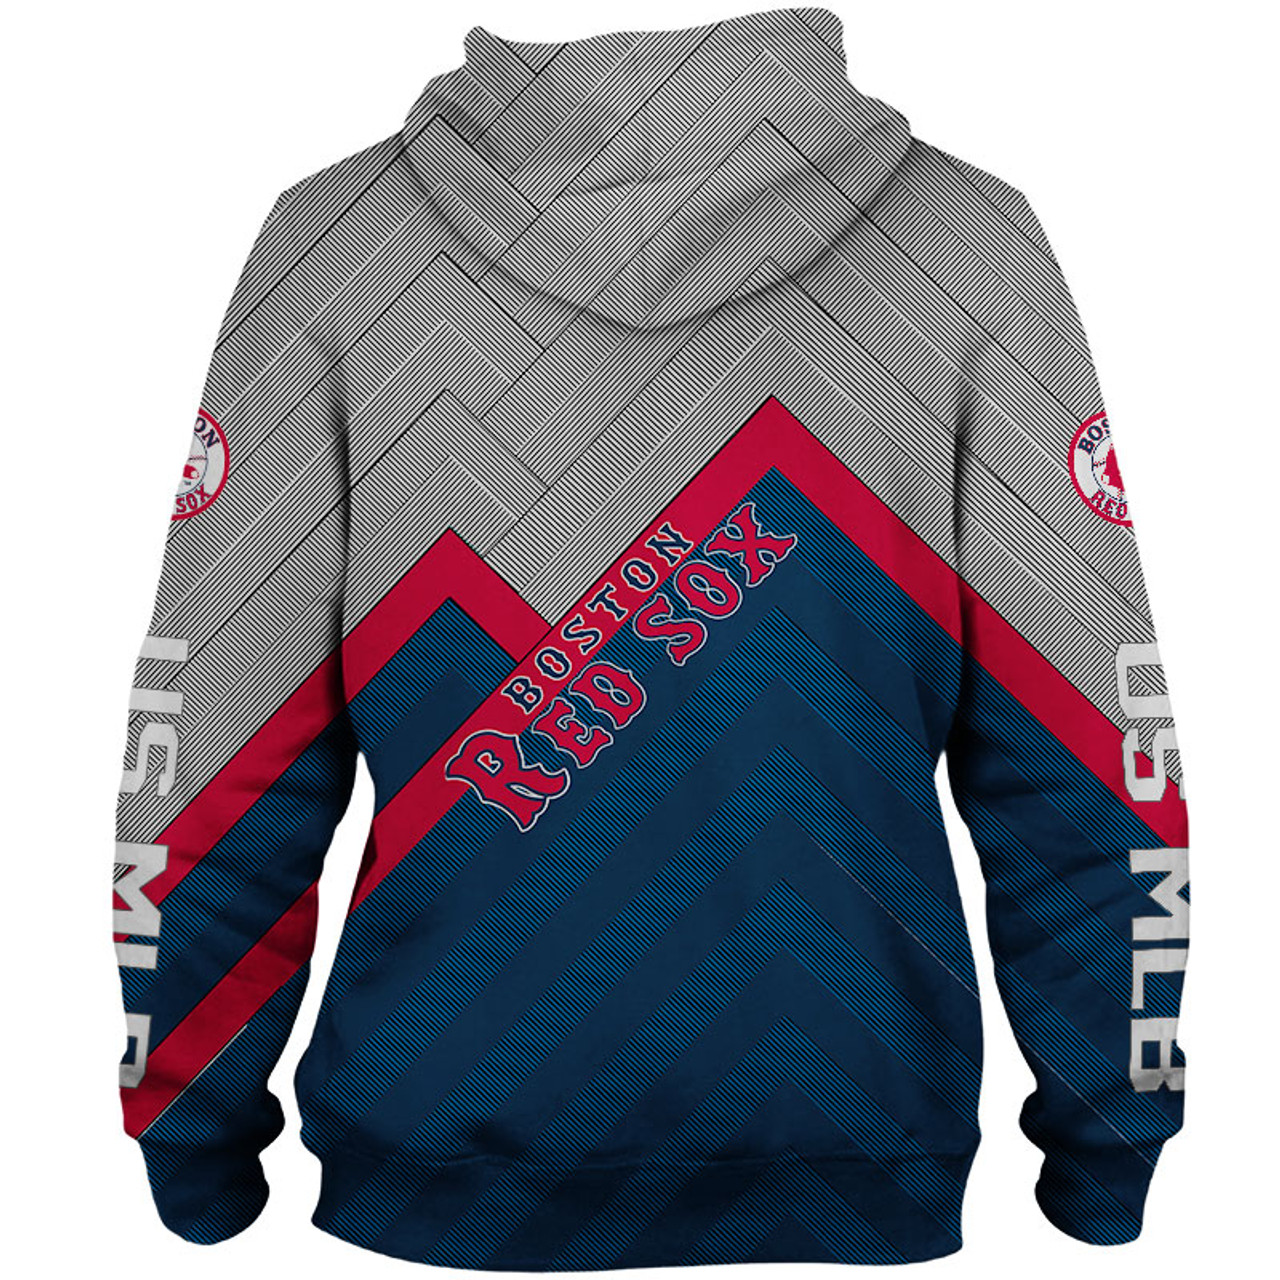 **(OFFICIAL-M.L.B.BOSTON-RED-SOXS-TEAM-ZIPPERED-HOODIES/CUSTOM-DETAILED-3D-GRAPHIC-PRINTED/PREMIUM-ALL-OVER-DOUBLE-SIDED-PRINT/OFFICIAL-RED-SOXS-TEAM-COLORS & CLASSIC-RED-SOXS-3D-GRAPHIC-LOGOS/WARM-NEW-PREMIUM-POCKET-ZIPPERED-M.L.B.HOODIES)**